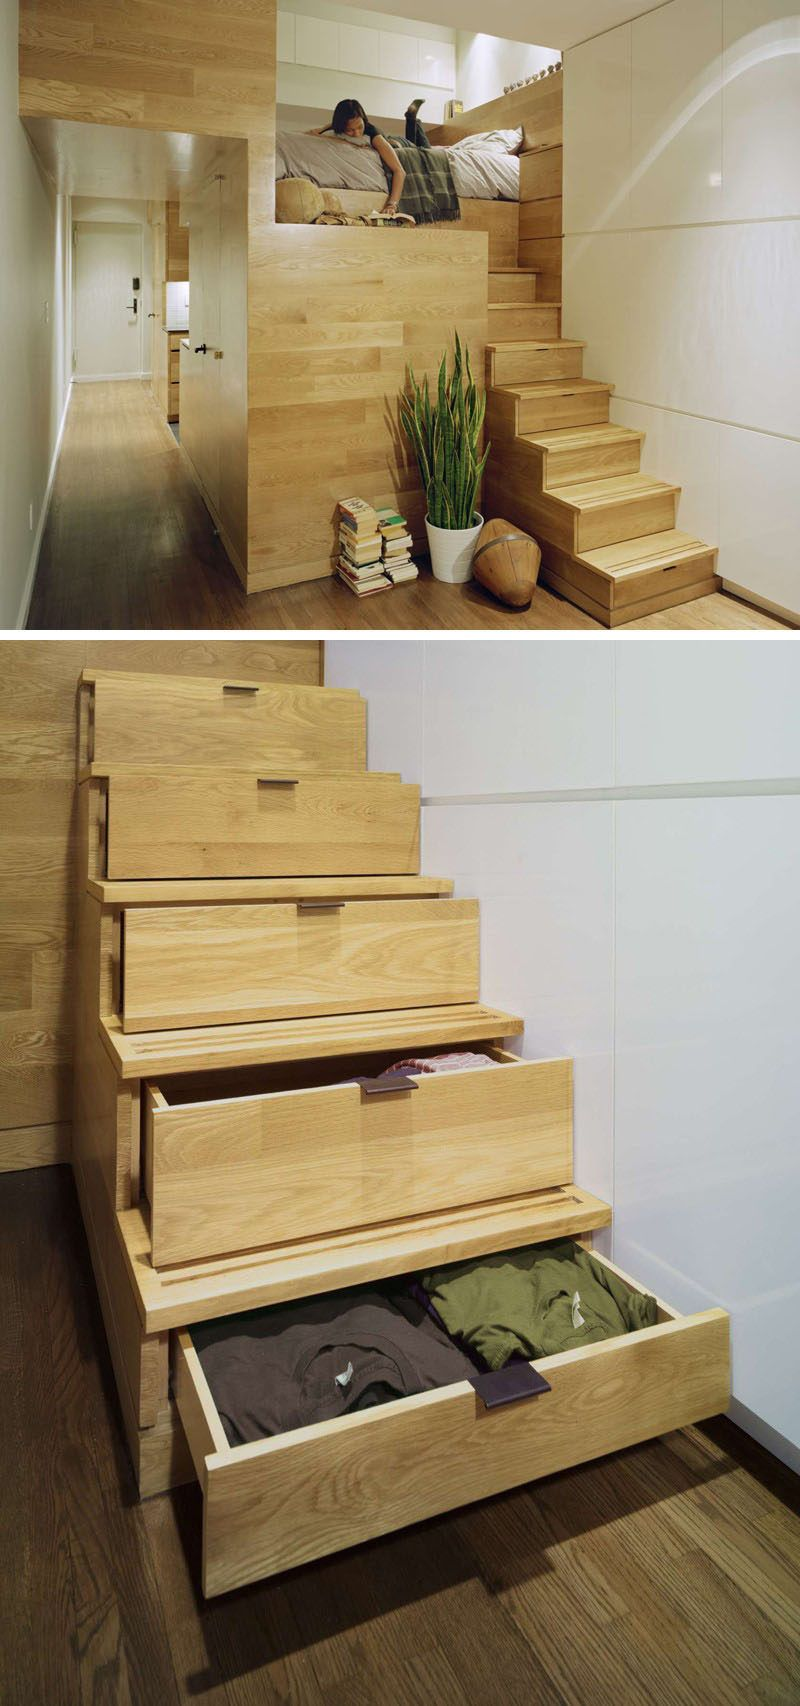 13 stair design ideas for small spaces 13 clothing storage and design - Pinterest storage ideas for small spaces ideas ...